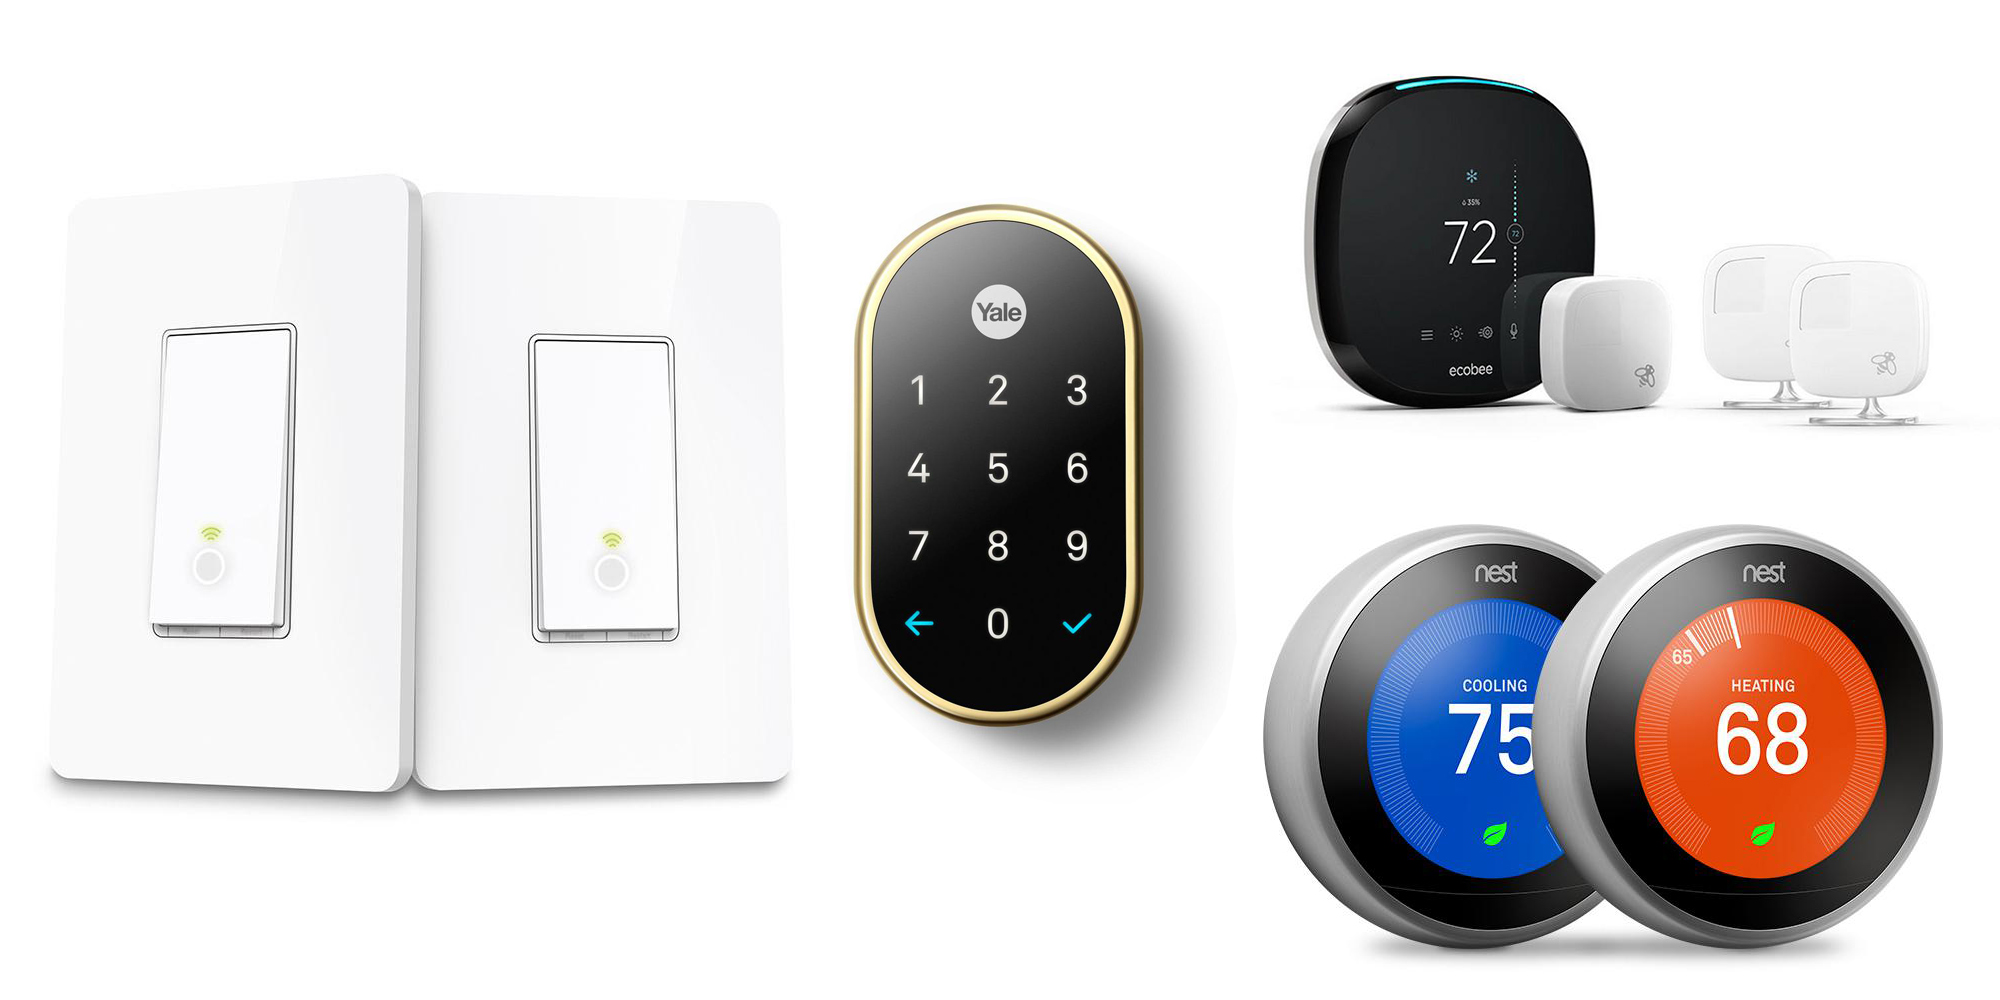 Home Depot's big 1-day smart home sale includes ecobee, Nest, TP-Link and more